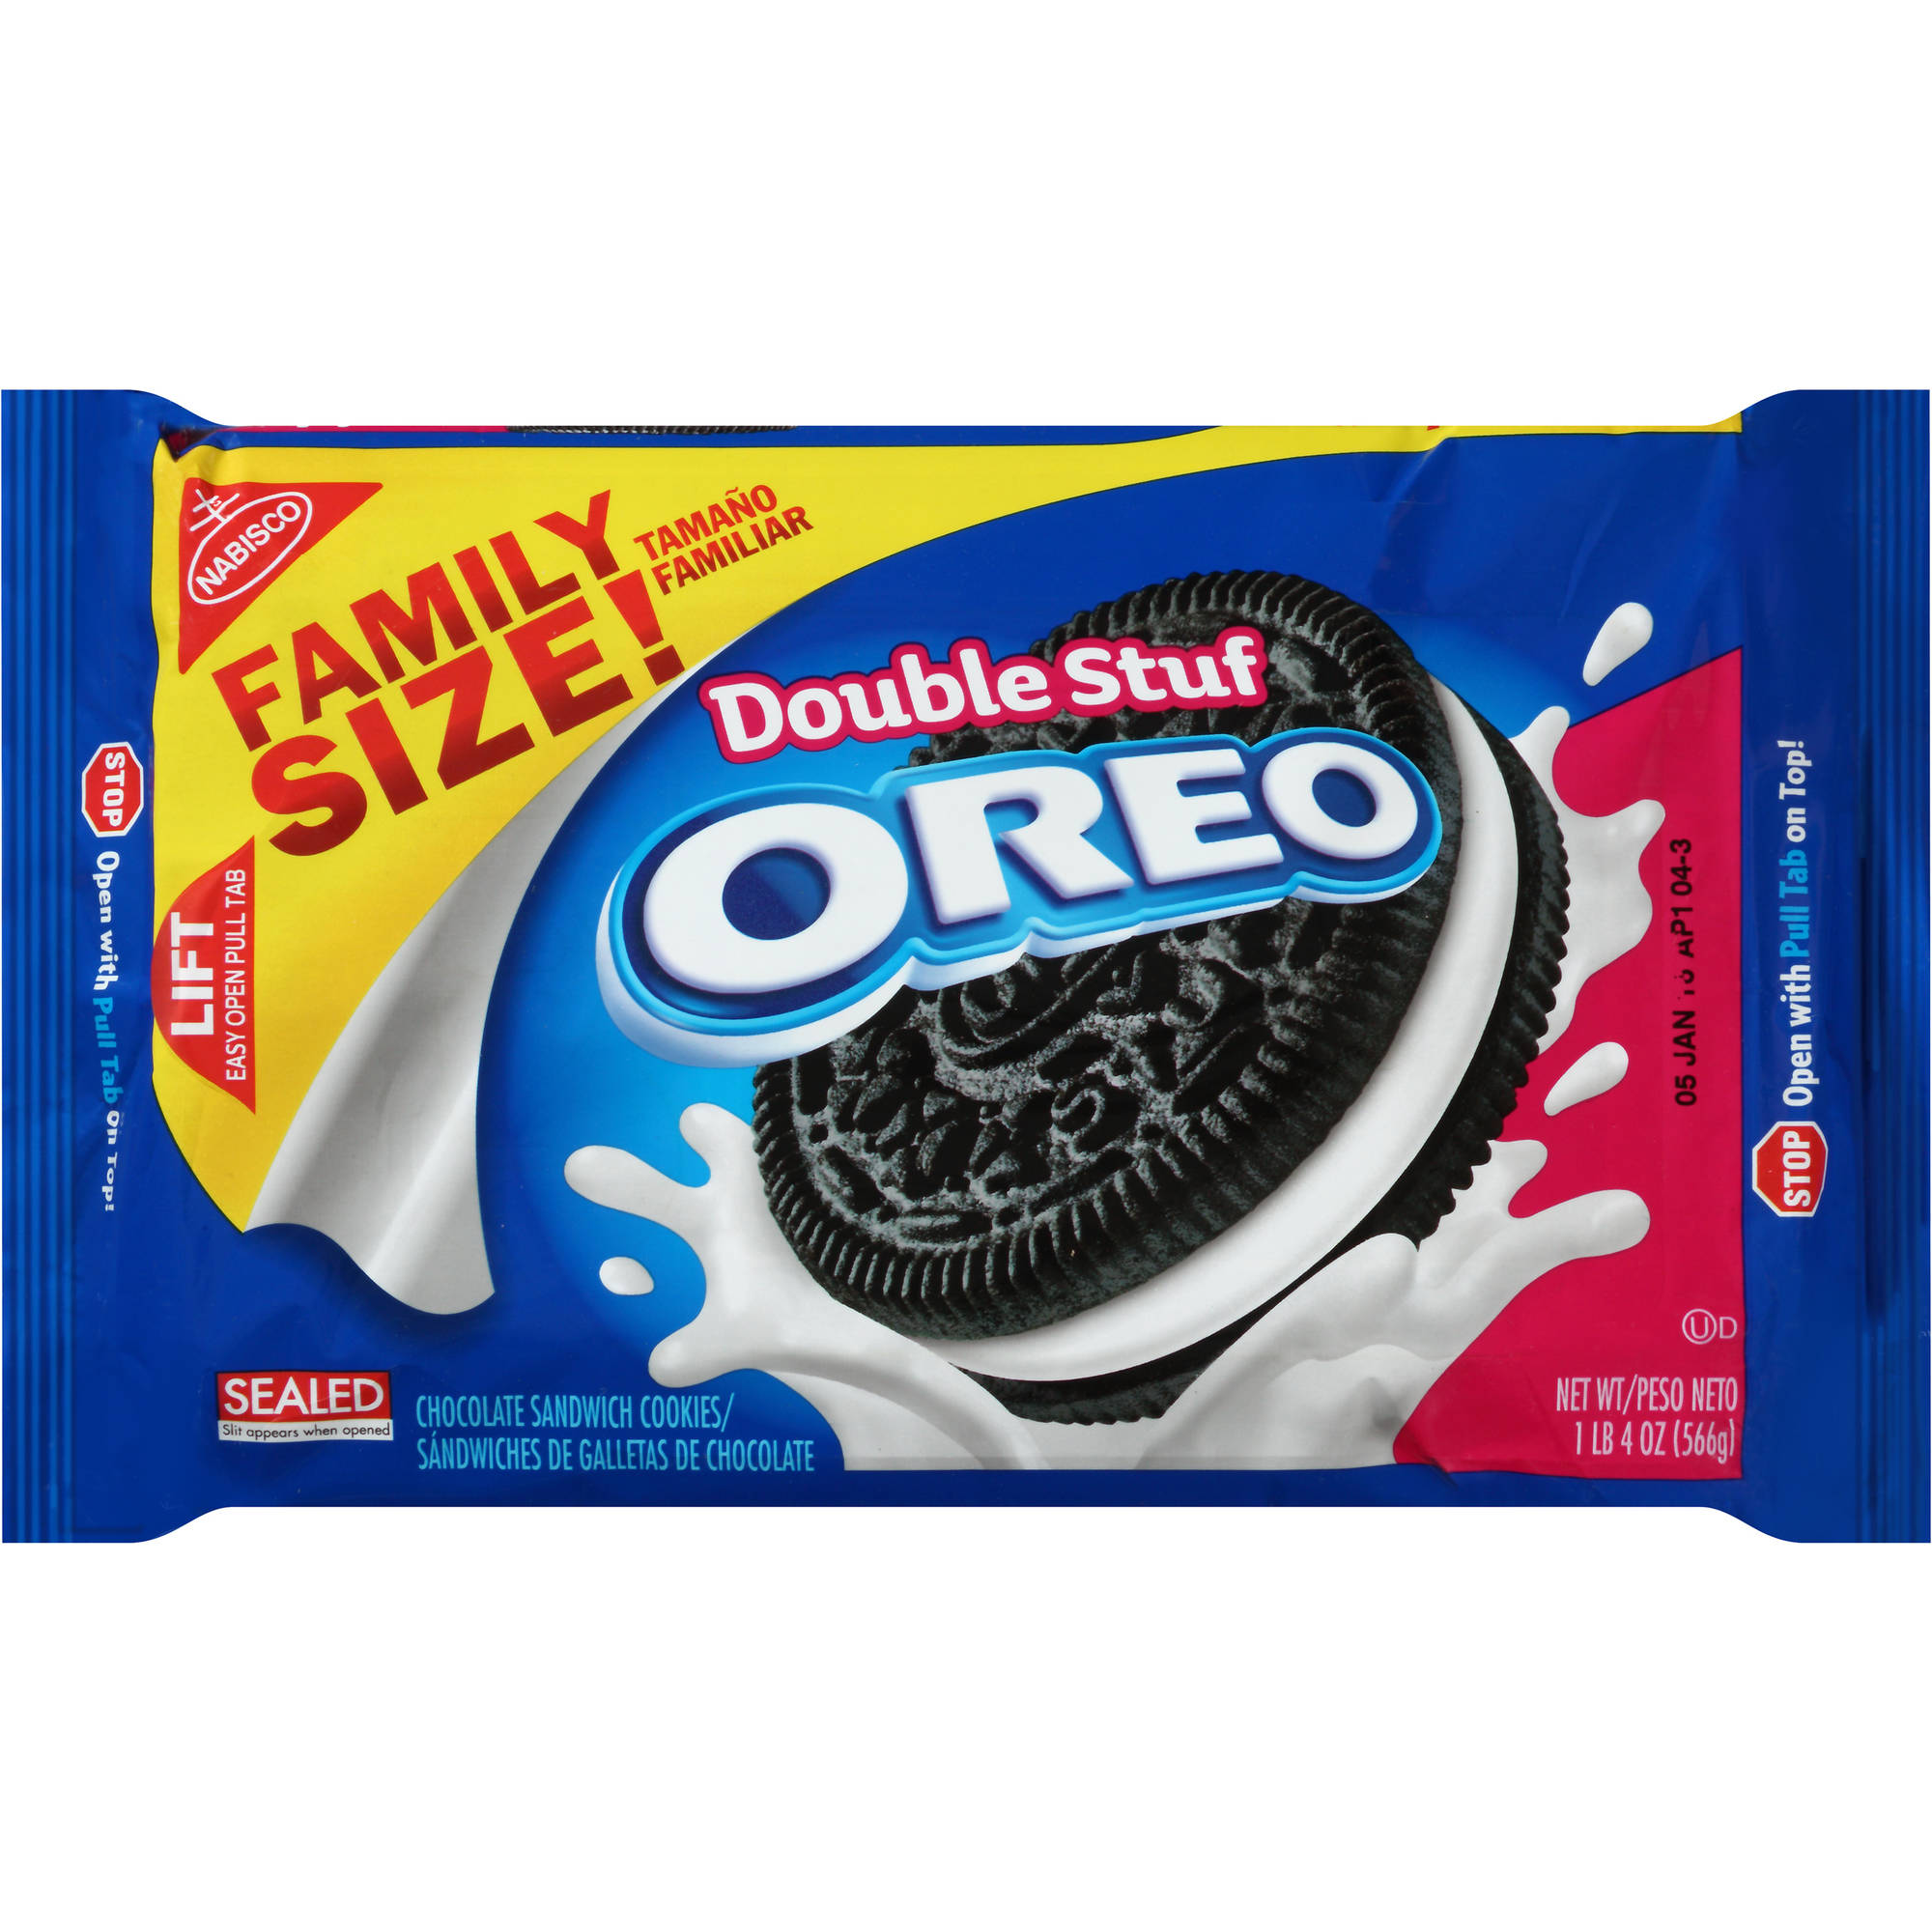 Nabisco Oreo Double Stuf Chocolate Sandwich Cookies, 20 oz